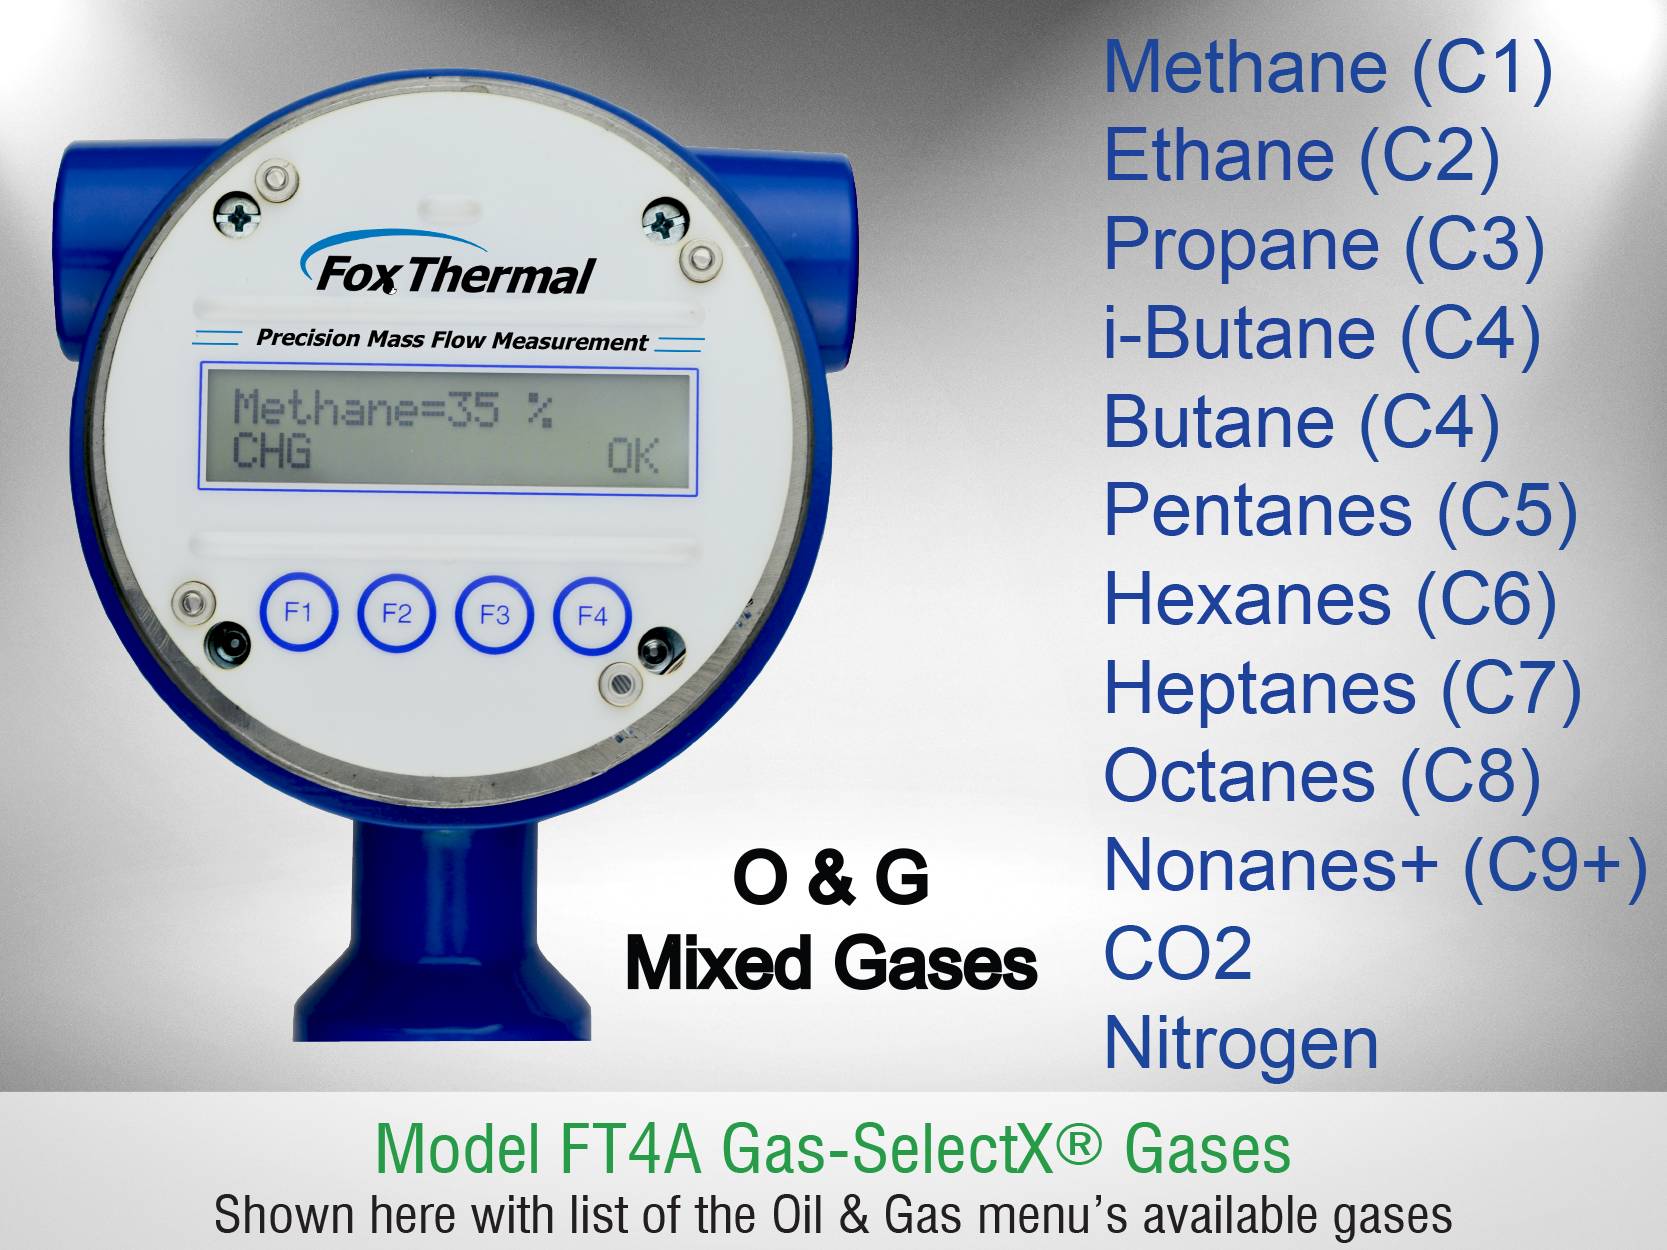 Gas-SelectX® Gas Options